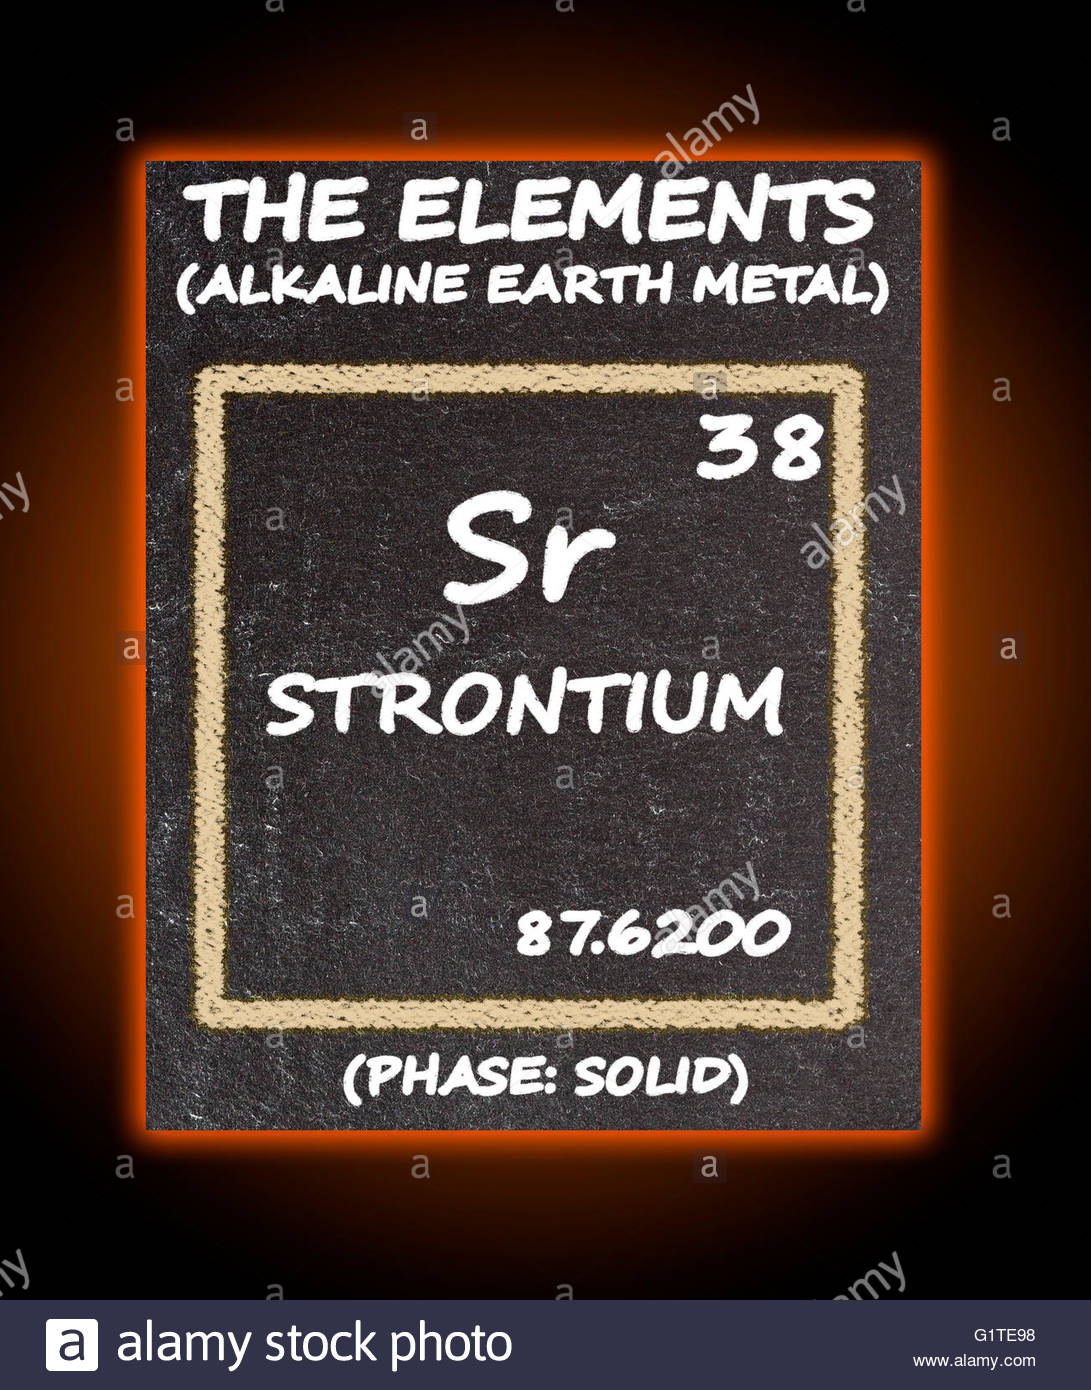 Strontium Details From The Periodic Table Stock Photo 104414948